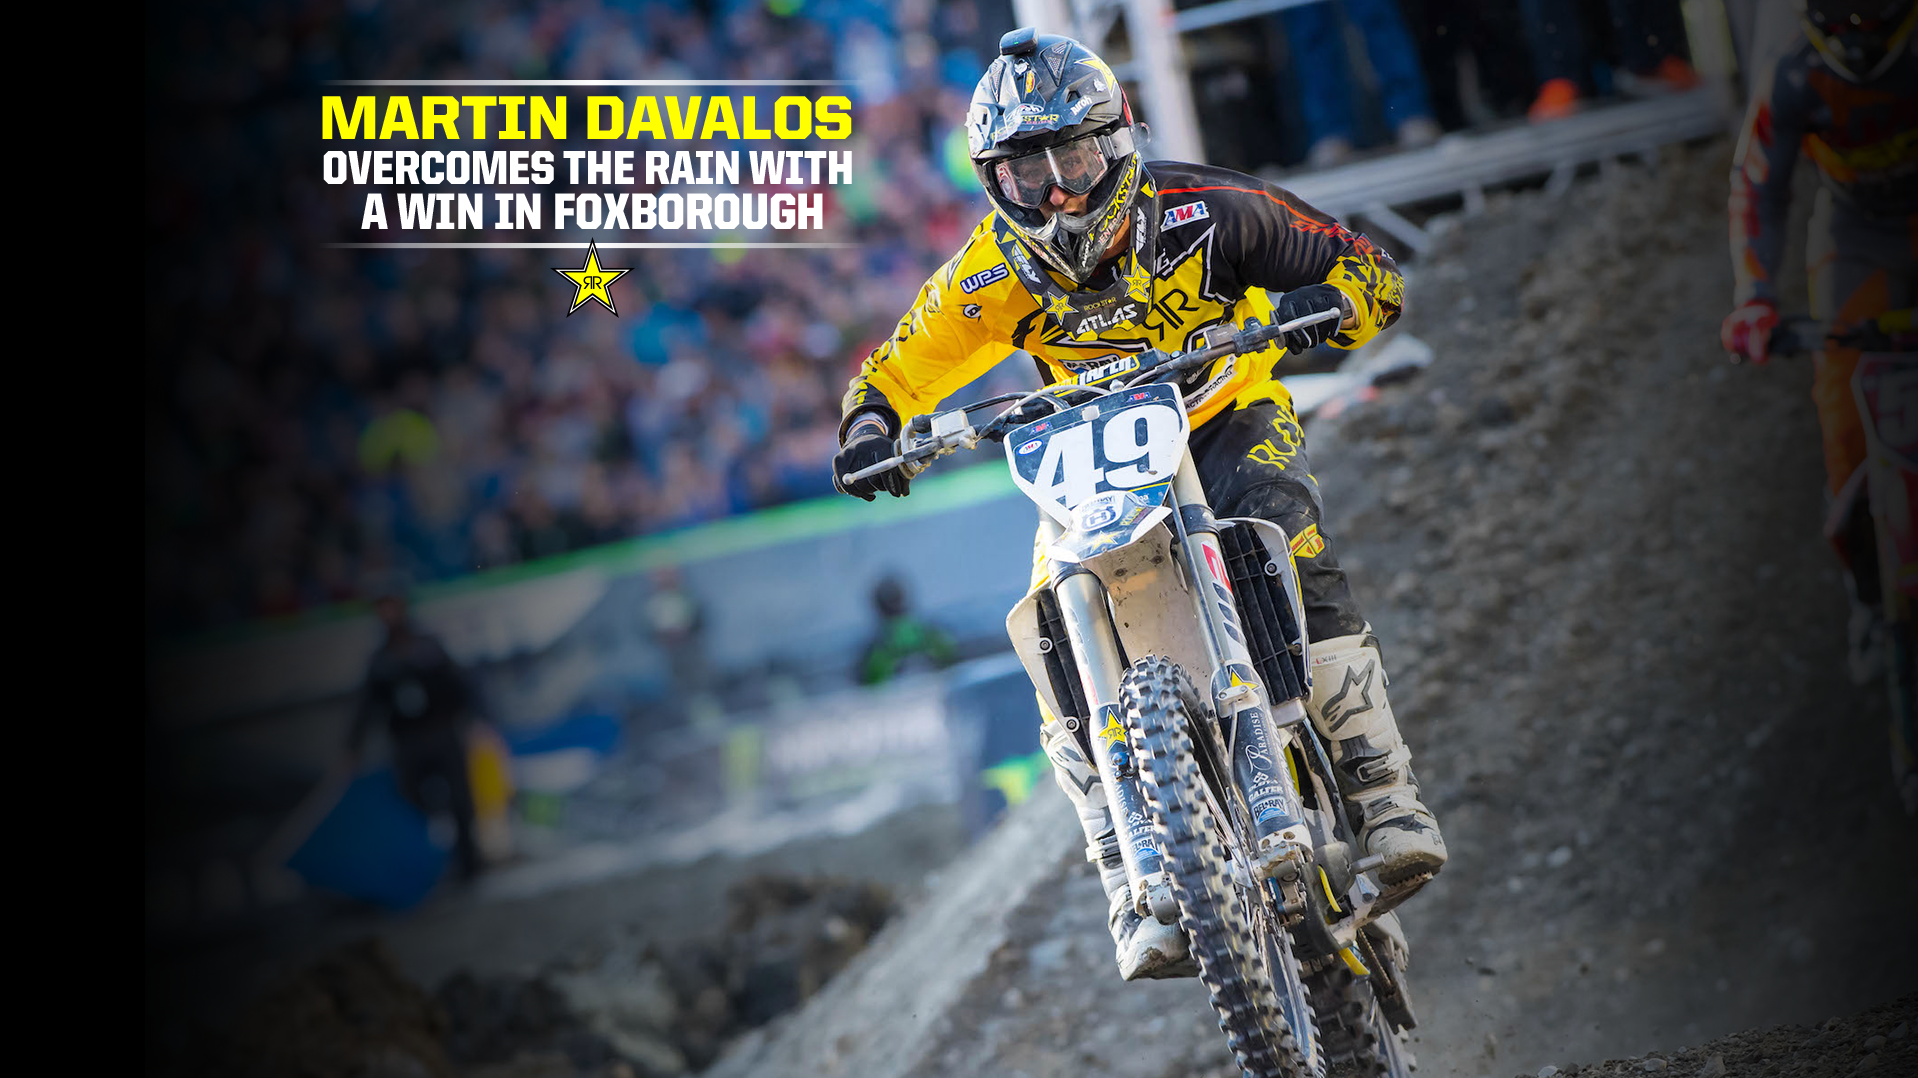 Martin Davalos Overcomes the Rain with a Win in Foxborough